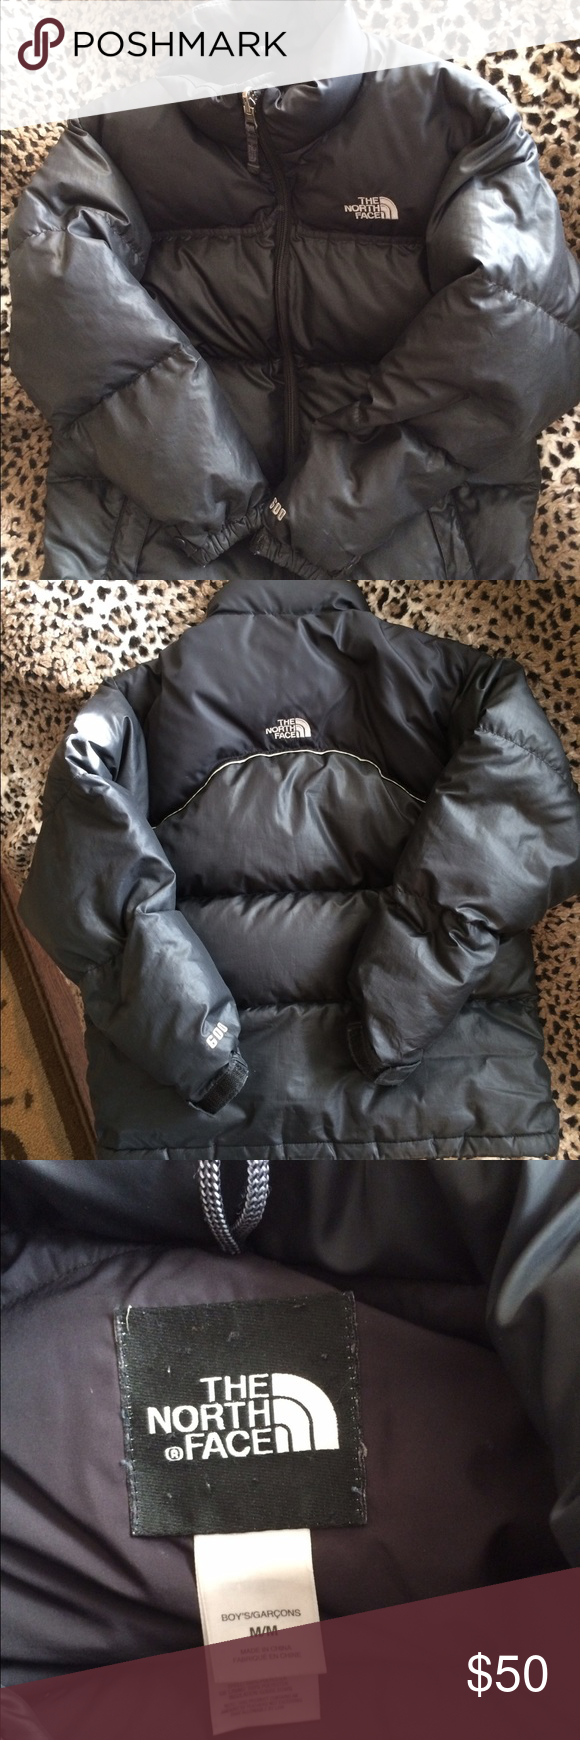 c2556b7910 🎉Price Drop 🎉 Boy s North Face 600 Puffer Coat Authentic North Face Boy s  Size Medium (10 12) Puffer 600 Down Coat. Very Good Condition.